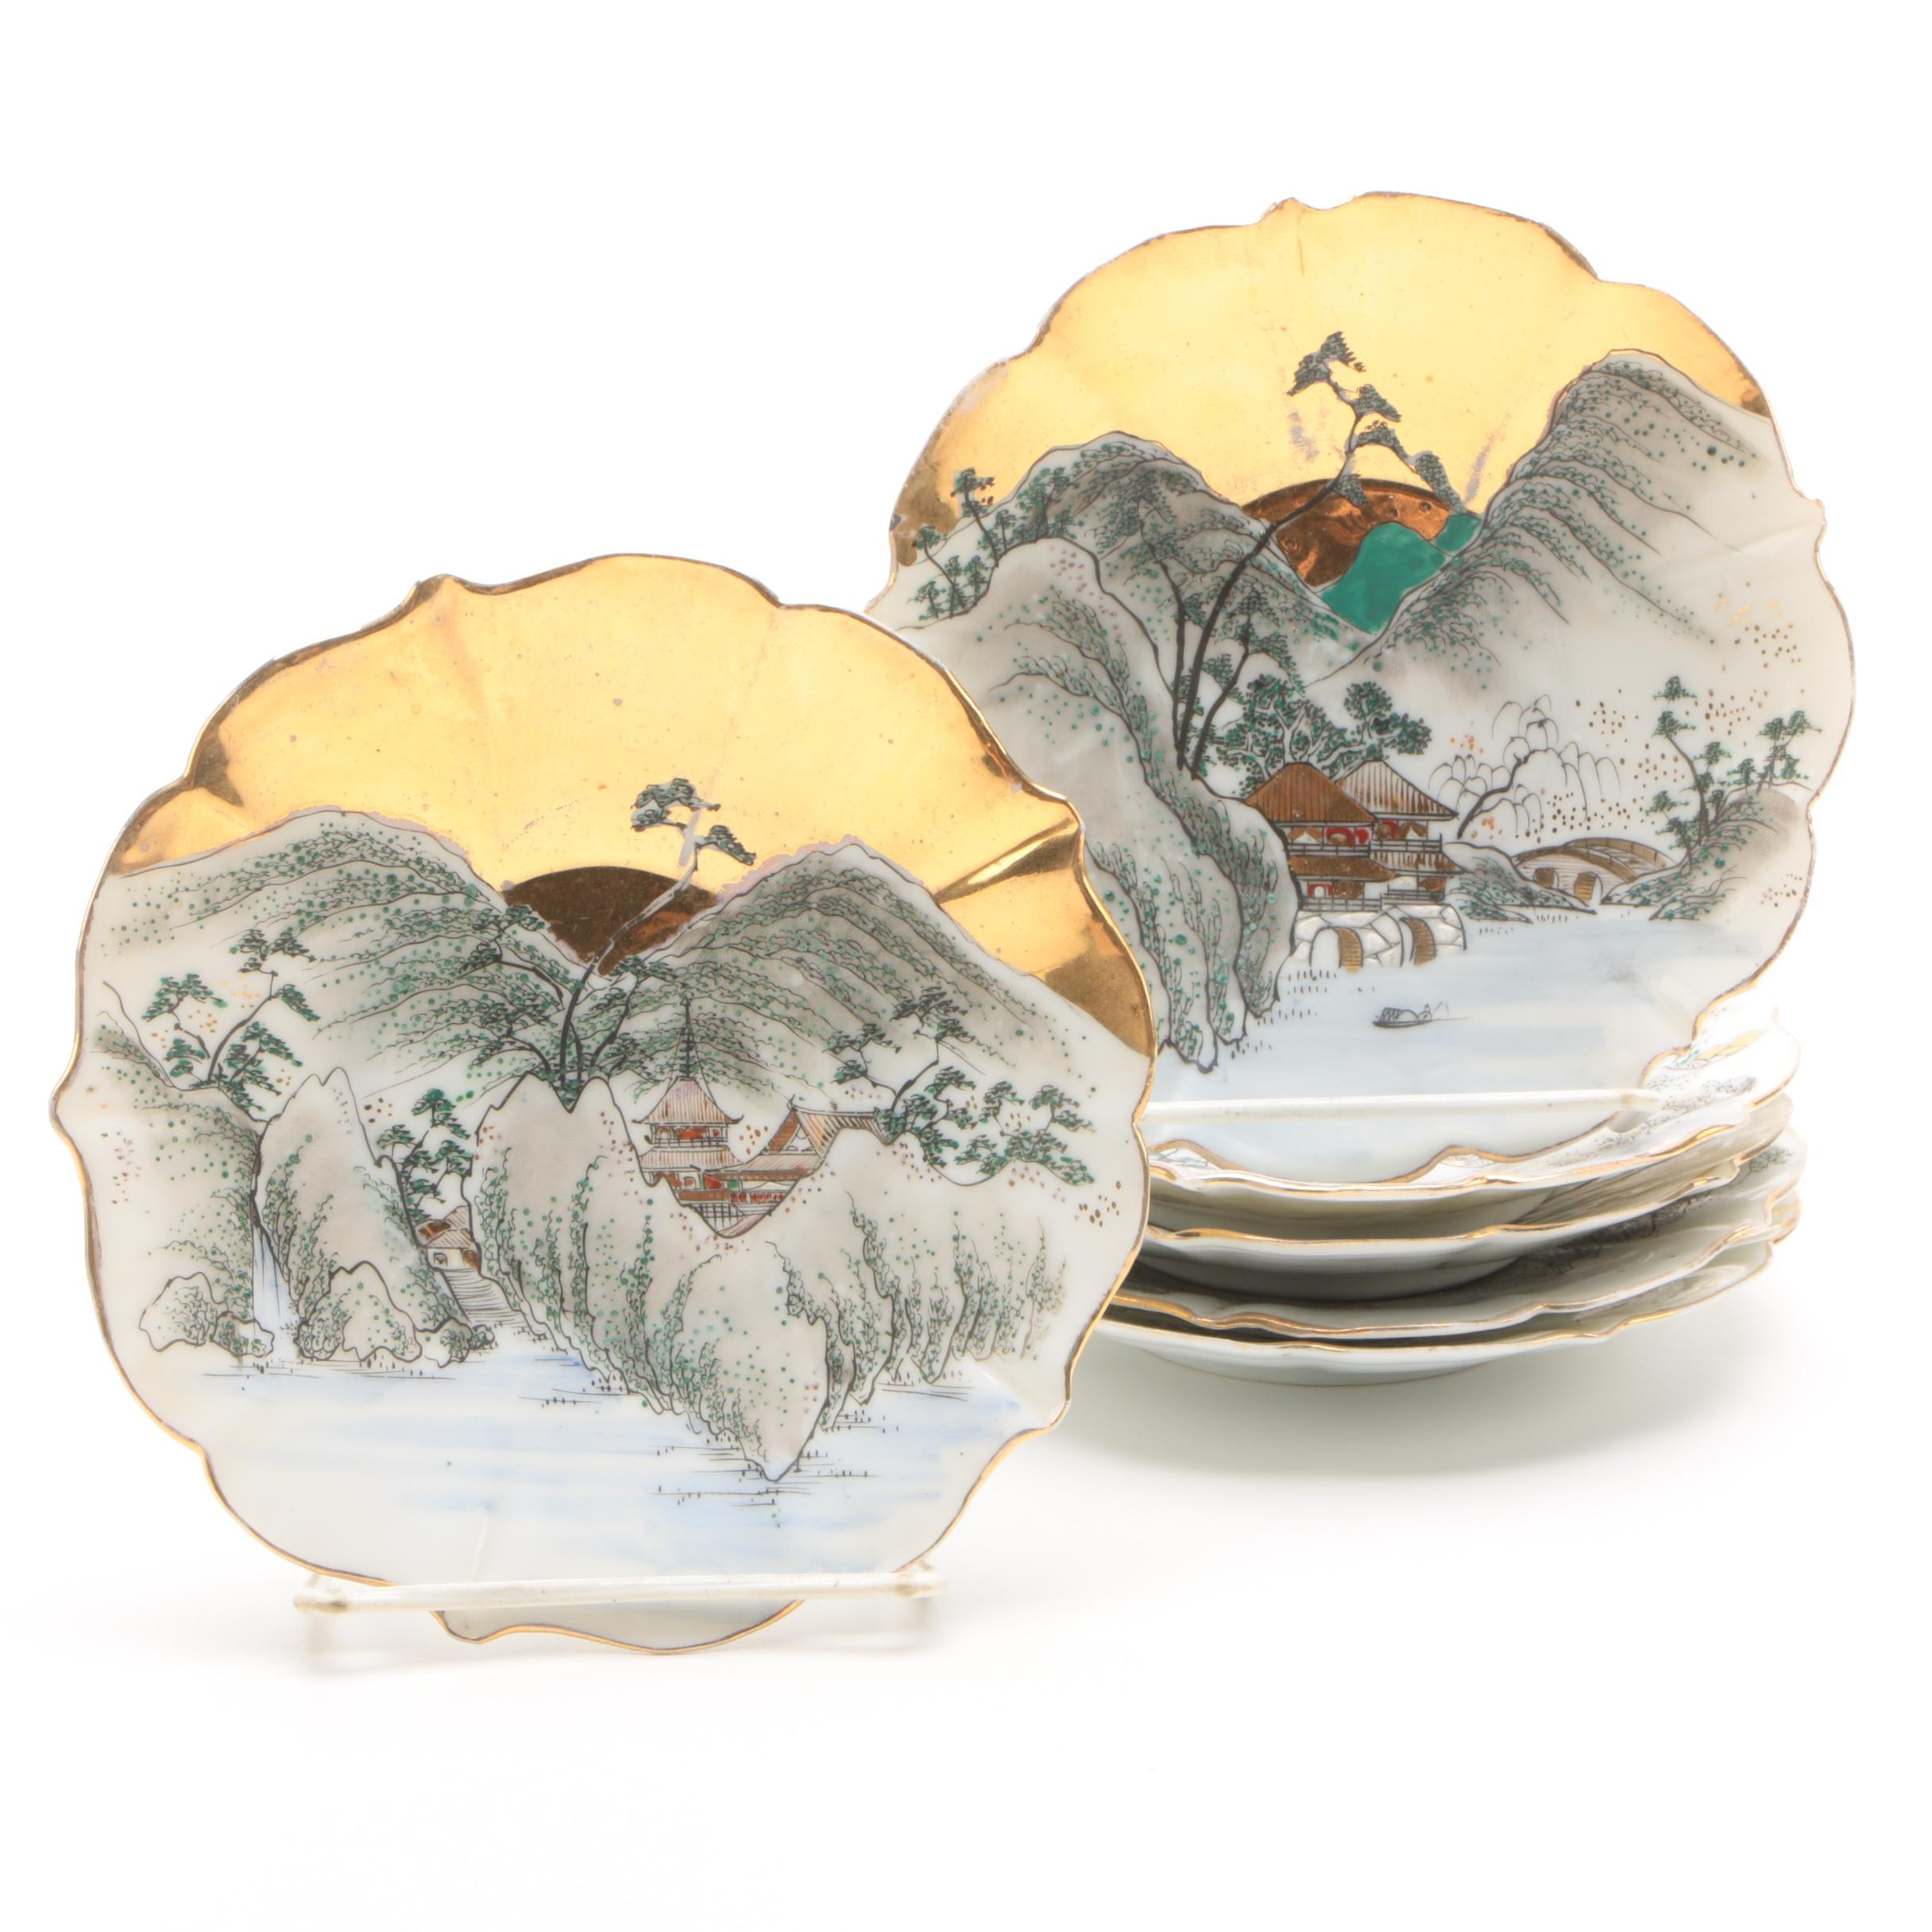 Vintage Japanese Hand-Painted Mountain Scene Porcelain Plates